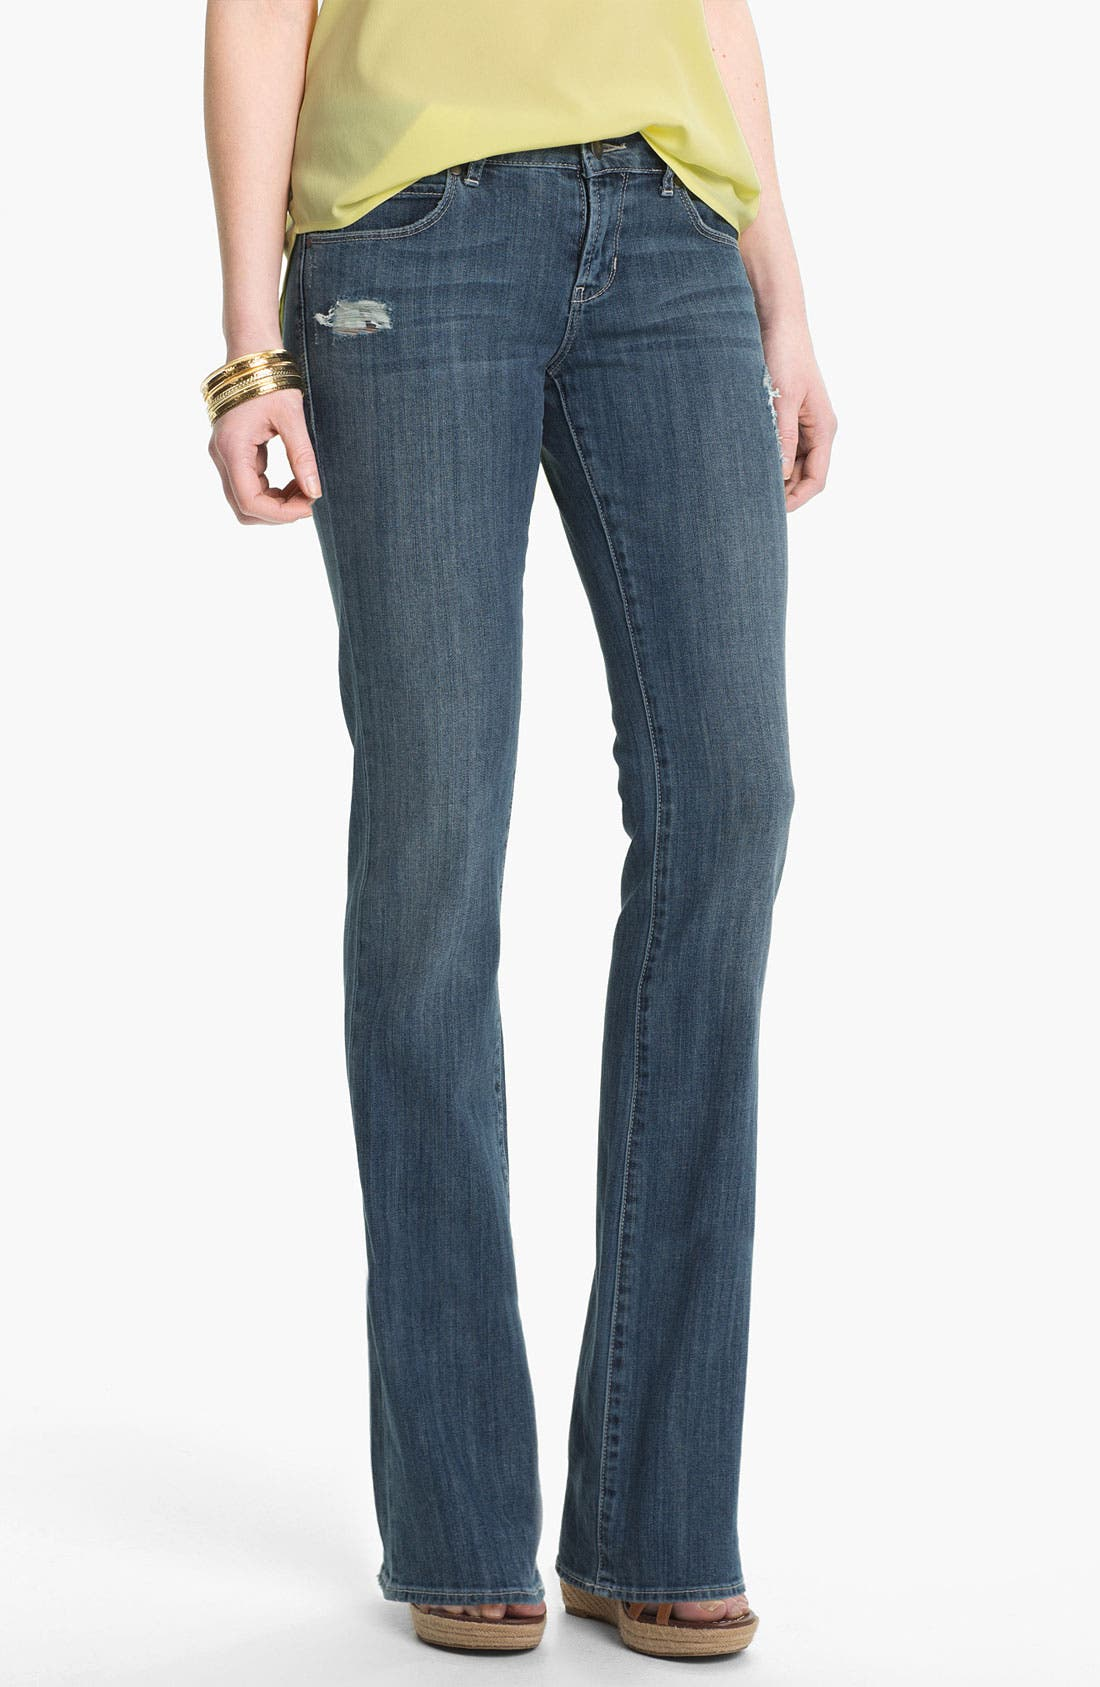 Main Image - Articles of Society 'Kendra' Bootcut Jeans (Worn) (Juniors)